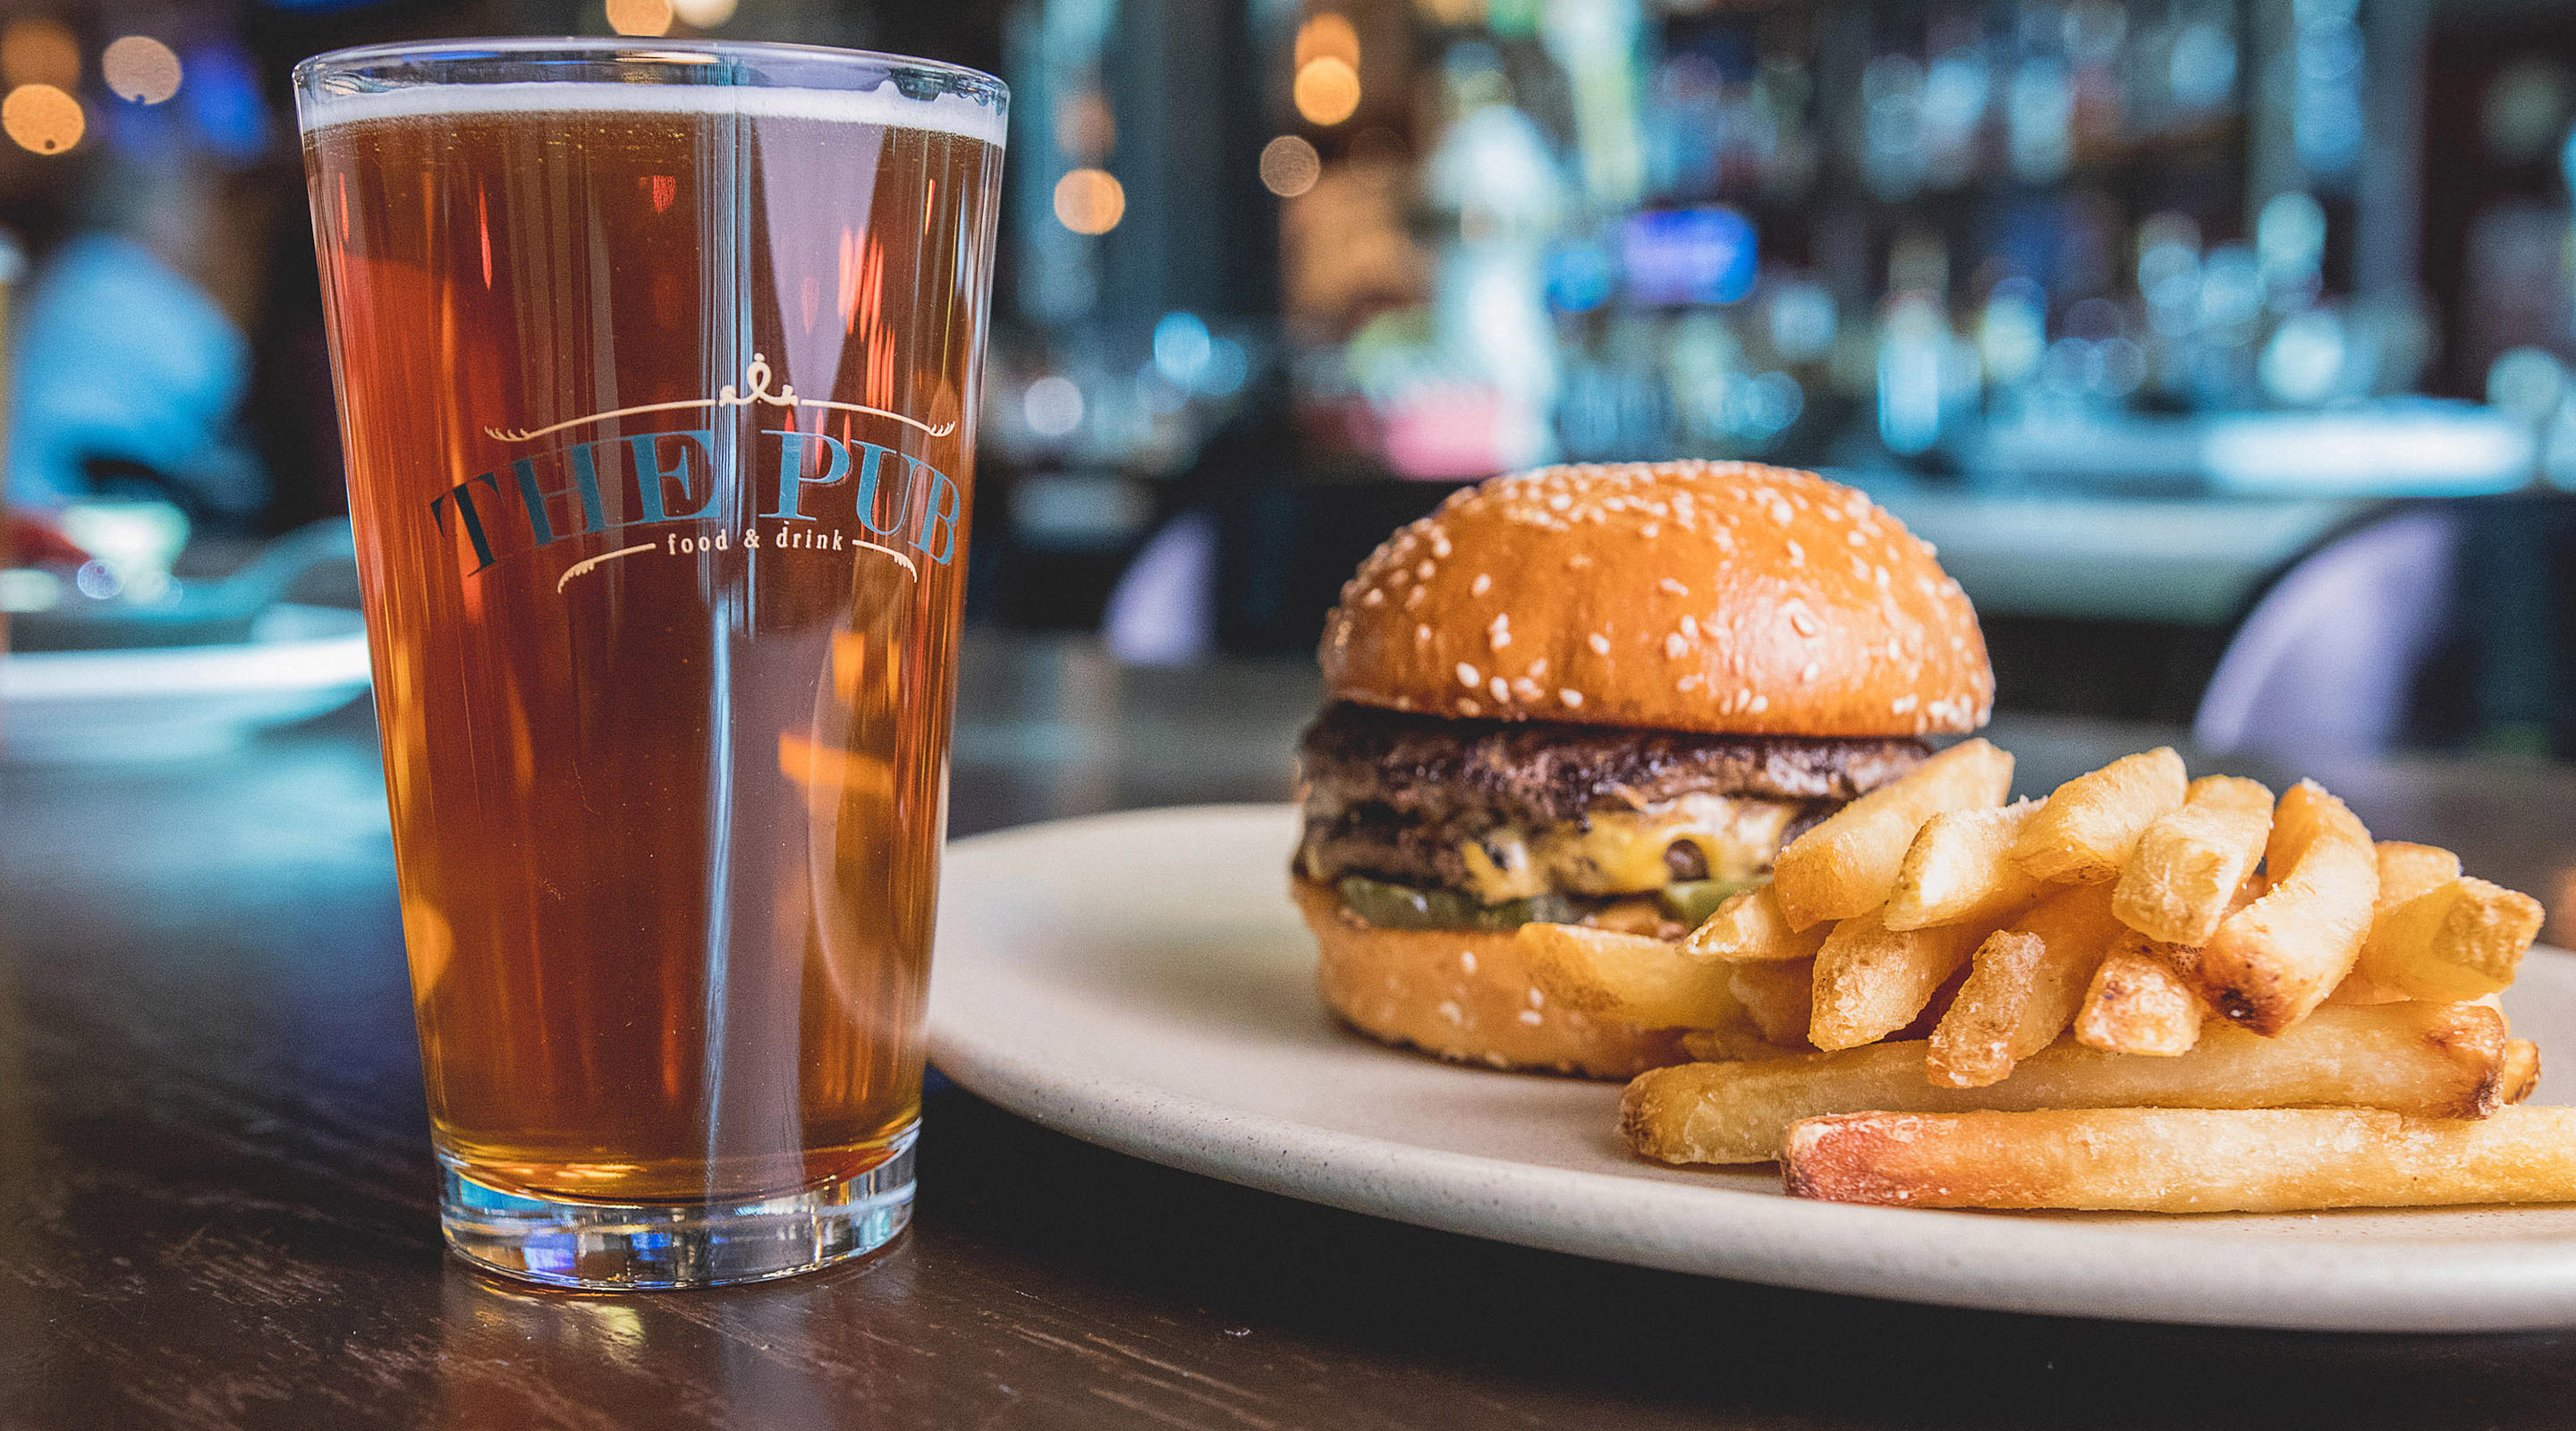 A burger and beer, the perfect combination.